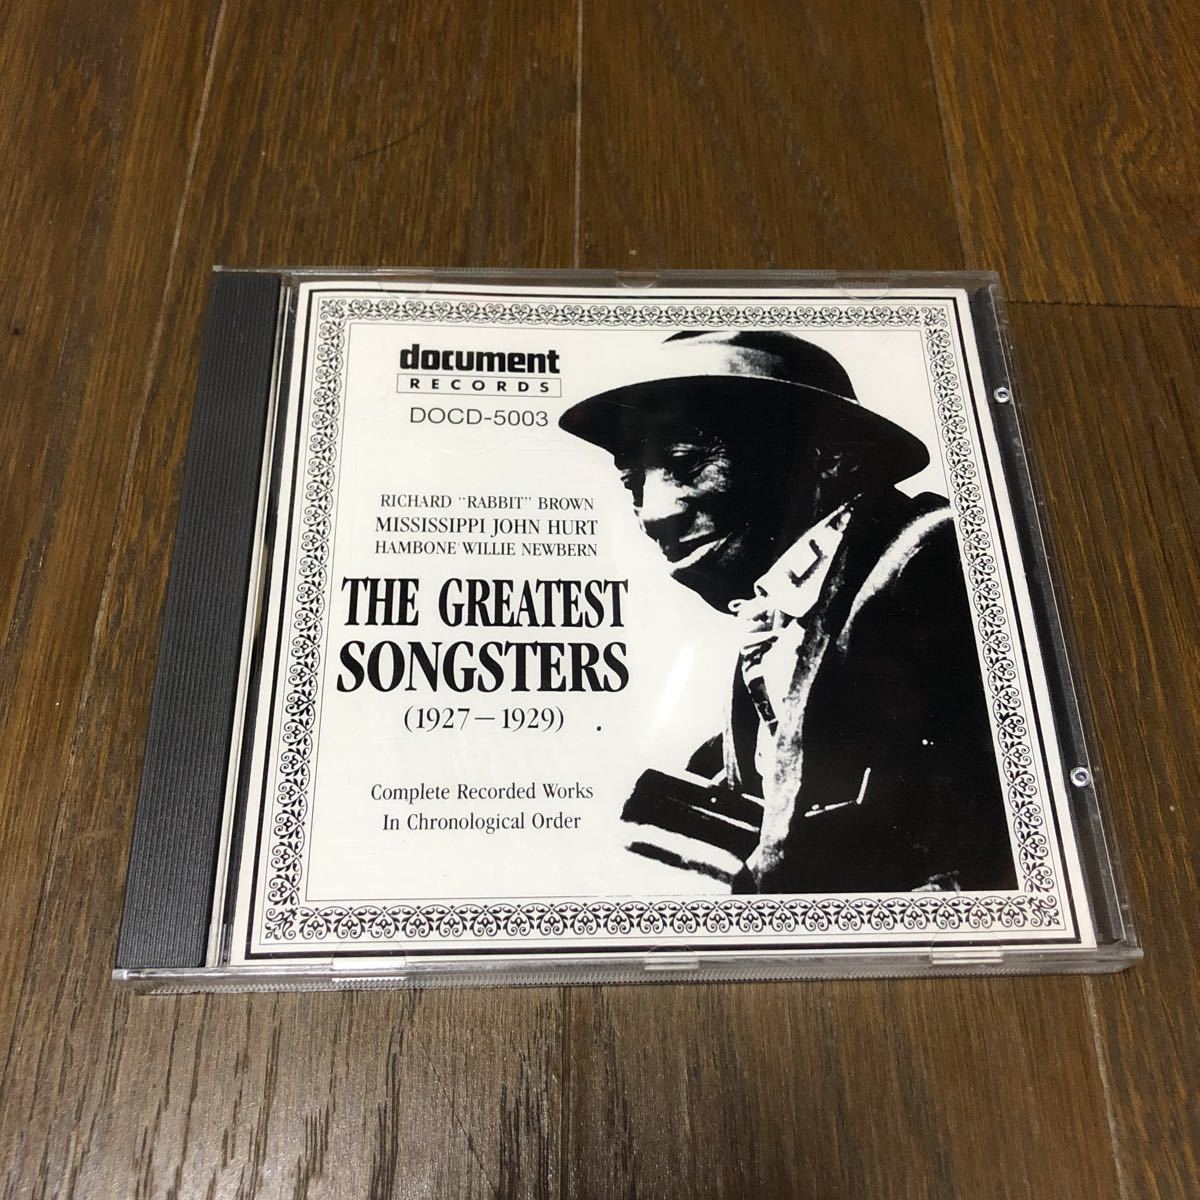 Various The Greatest Songsters 1927 - 1929 EU盤CD